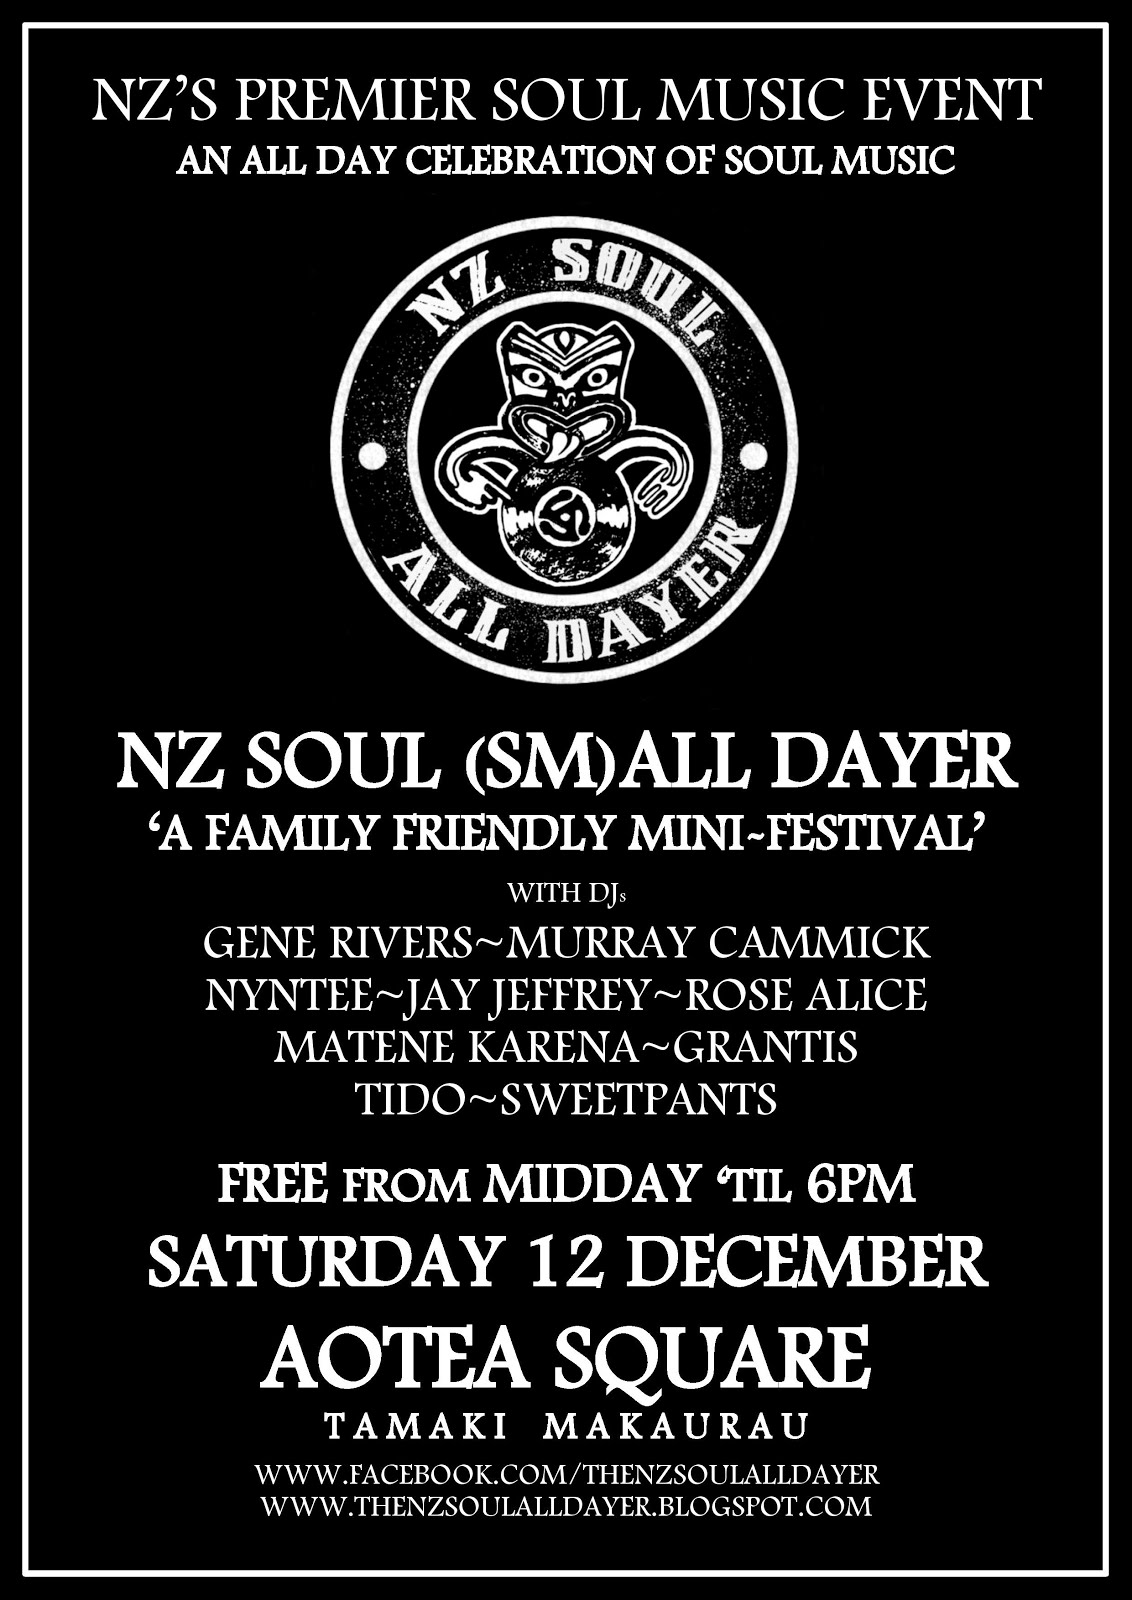 NZ Soul (Sm)All Dayer 2015